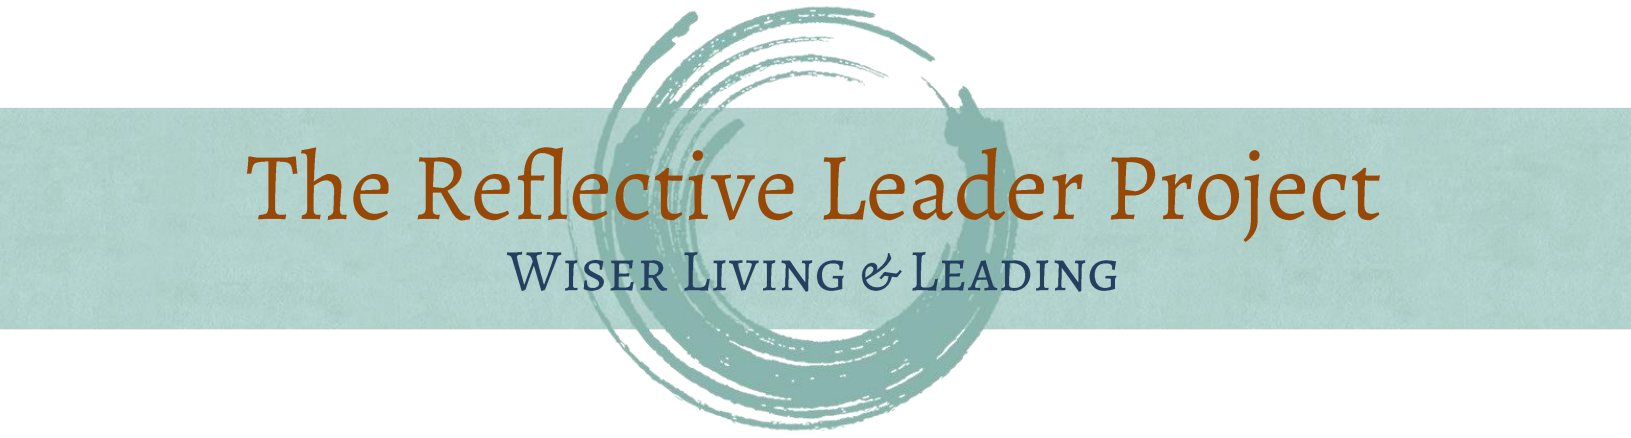 The Reflective Leader Project.png